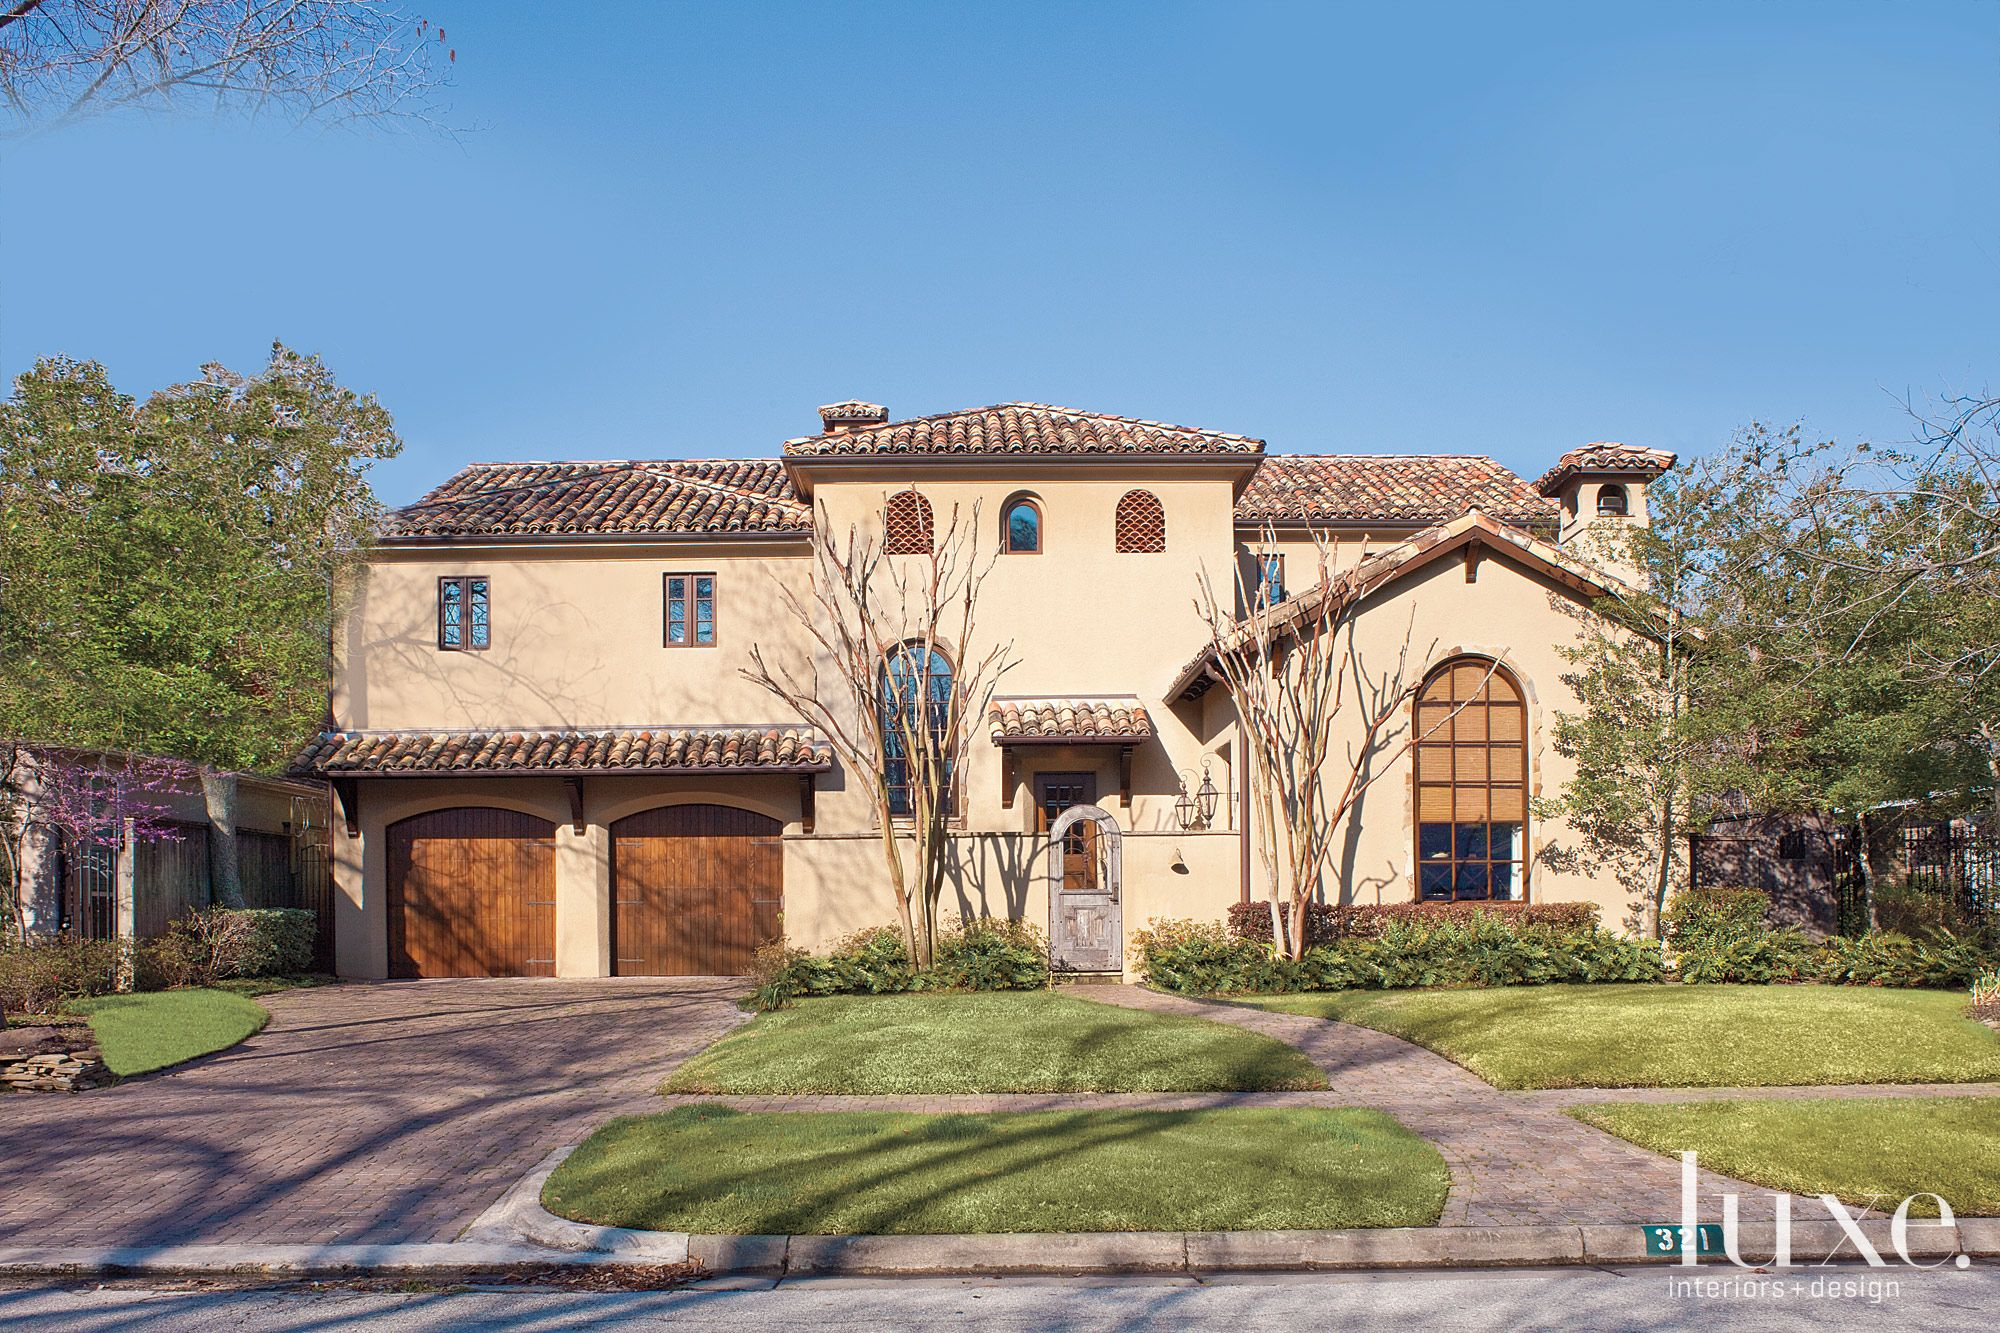 Mediterranean Cream Front Elevation with Arched Gate